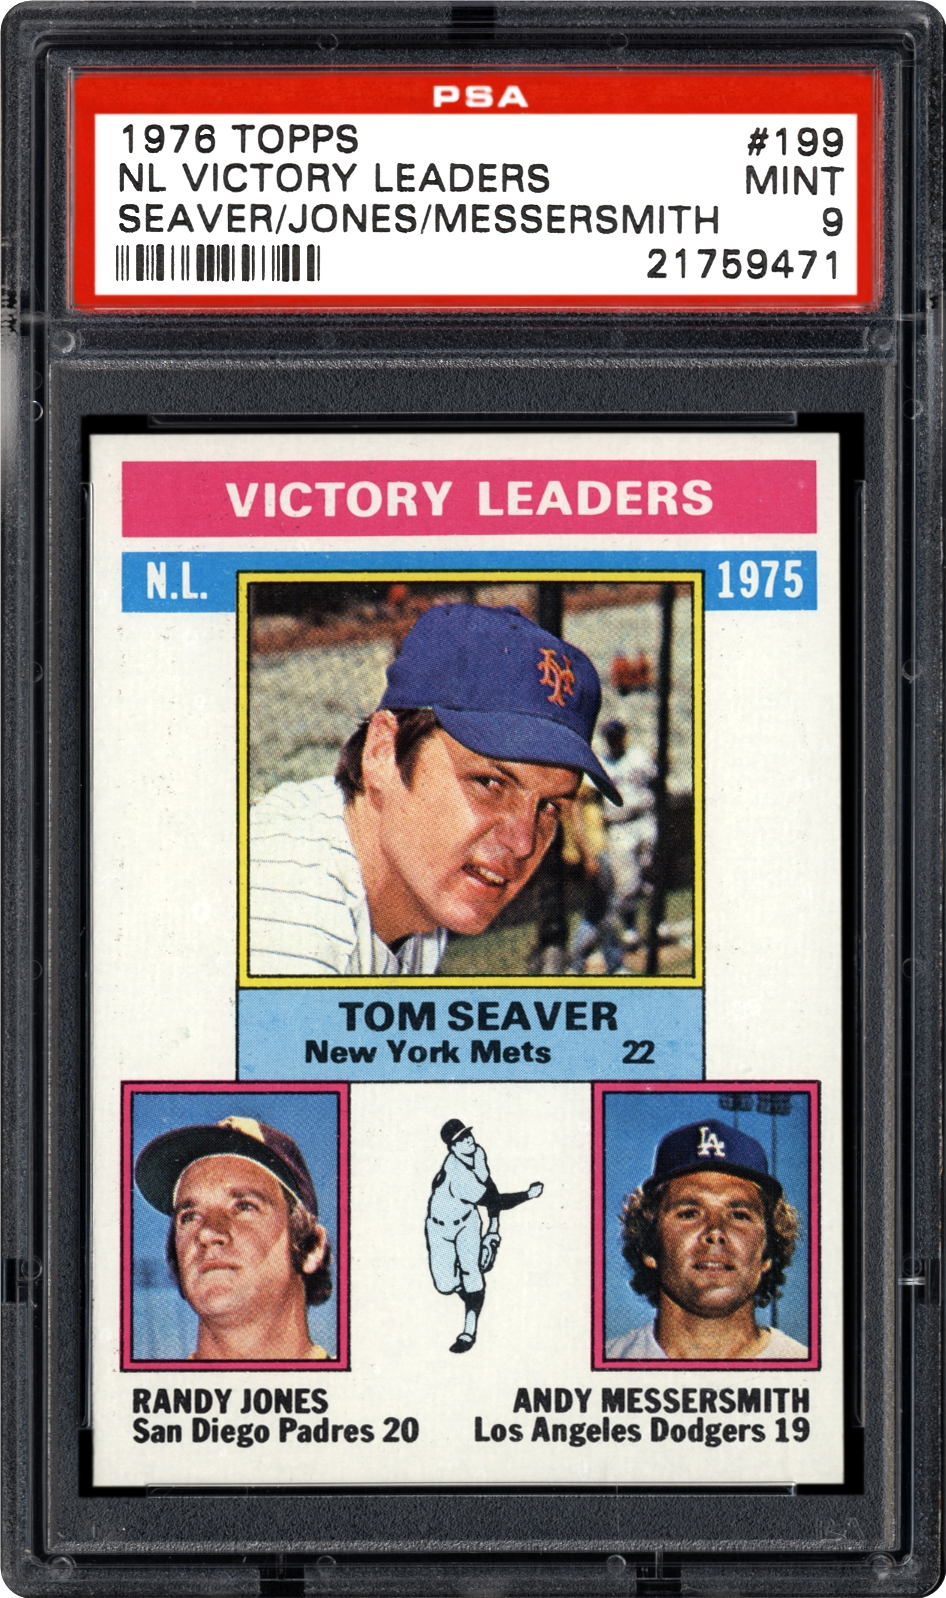 1976 topps nl victory leaders seaver jones messersmith psa cardfacts. Black Bedroom Furniture Sets. Home Design Ideas